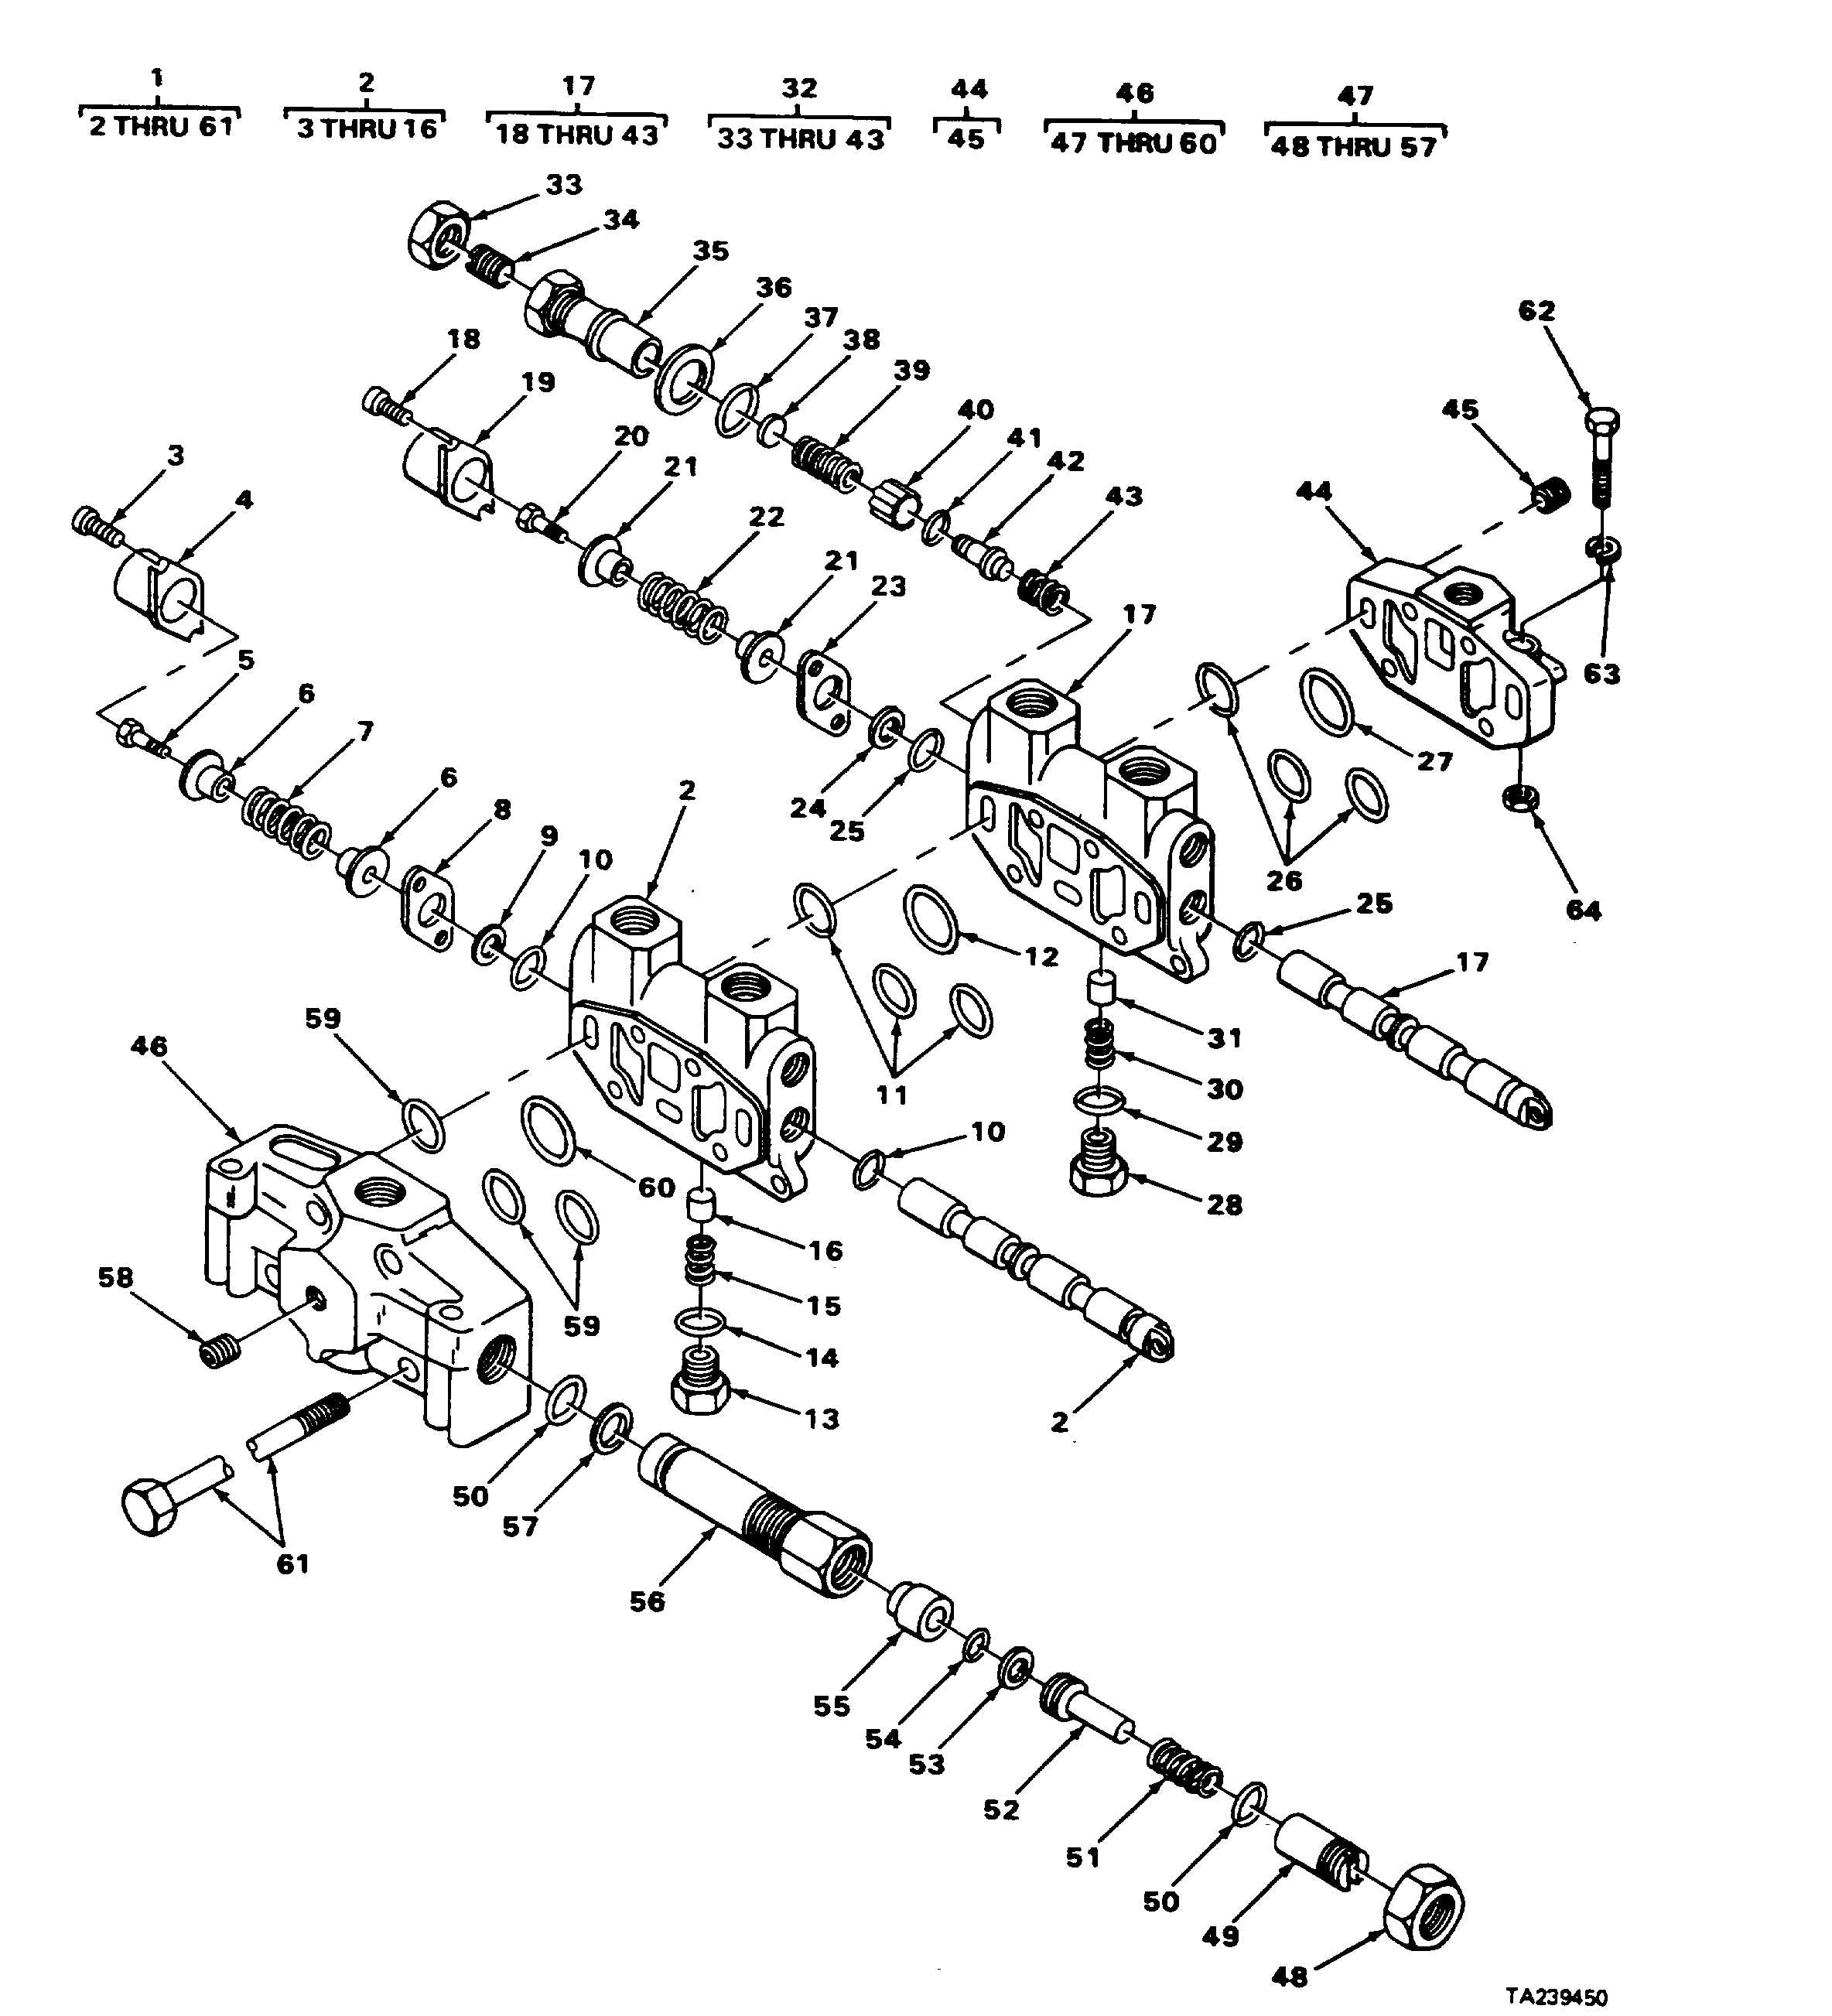 FIGURE 197. 2 BANK VALVE ASSEMBLY A20 SERIES.